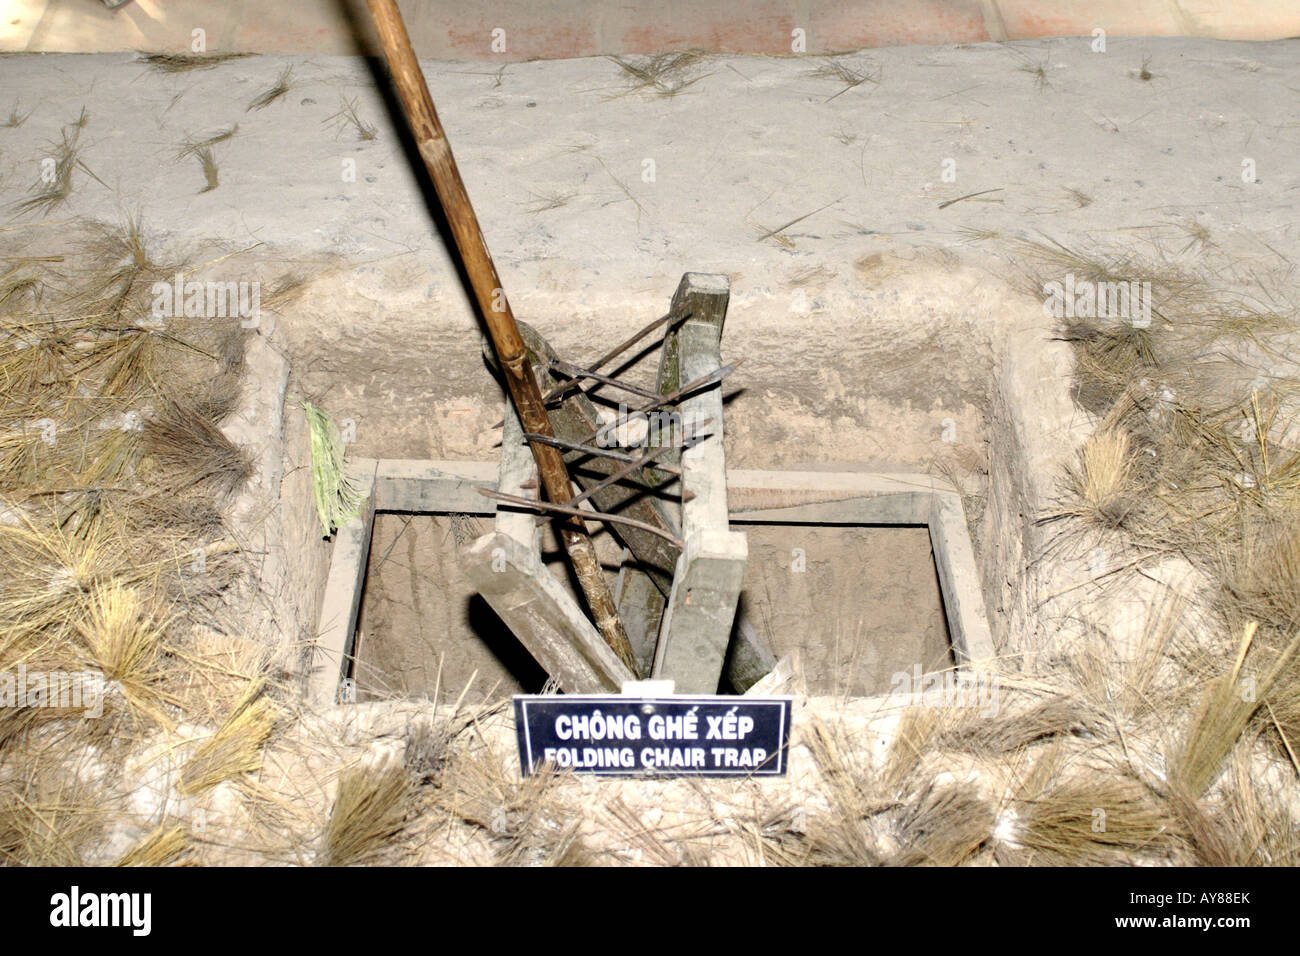 folding chair trap cute desk chairs booby vietnam war stock photos and